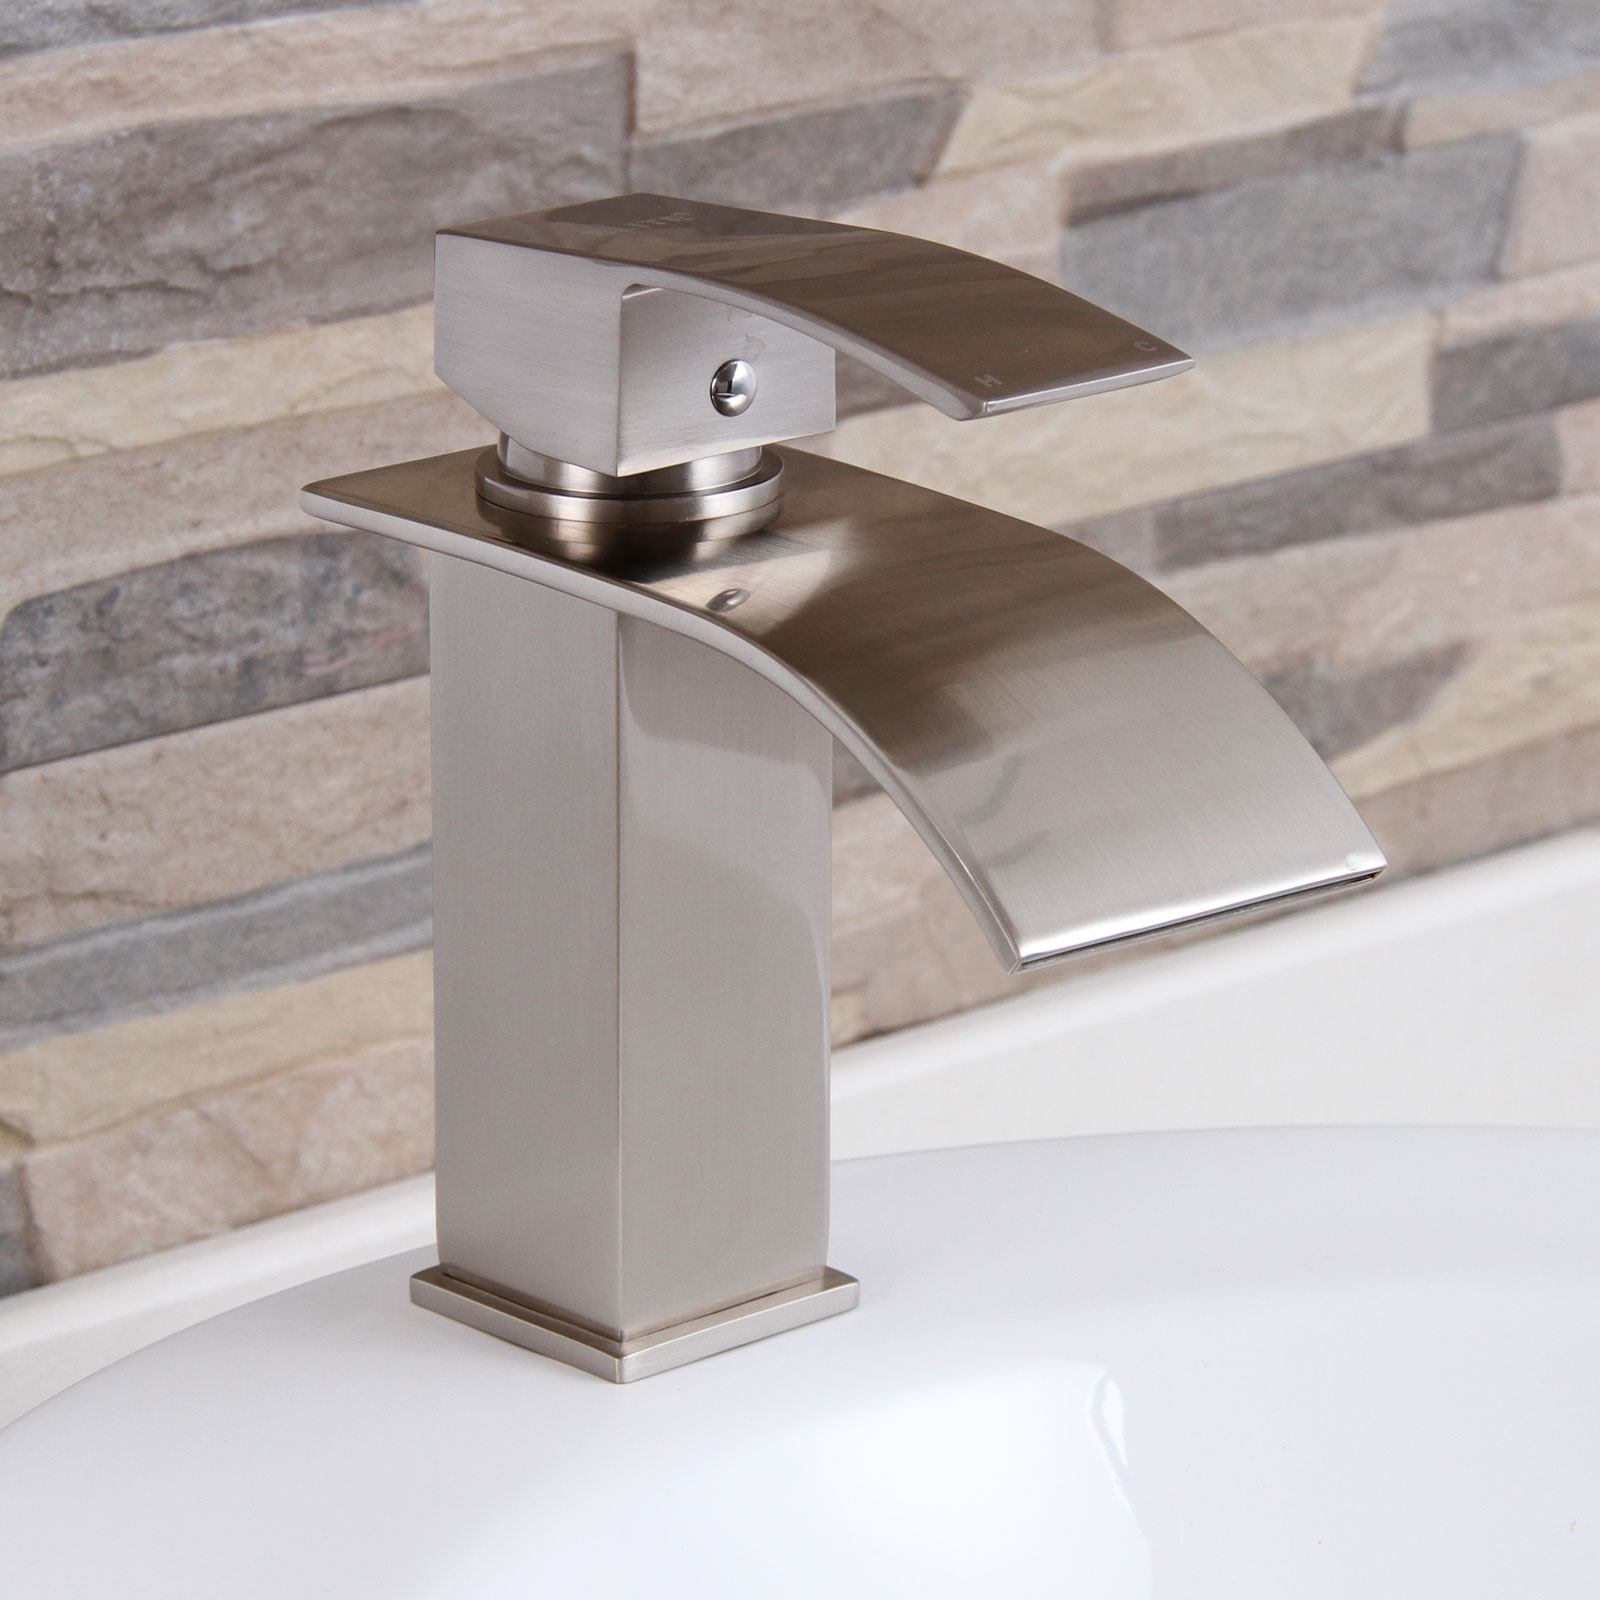 Amazing Waterfall Bathroom Faucet Brushed Nickel Related To Interior regarding sizing 1600 X 1600